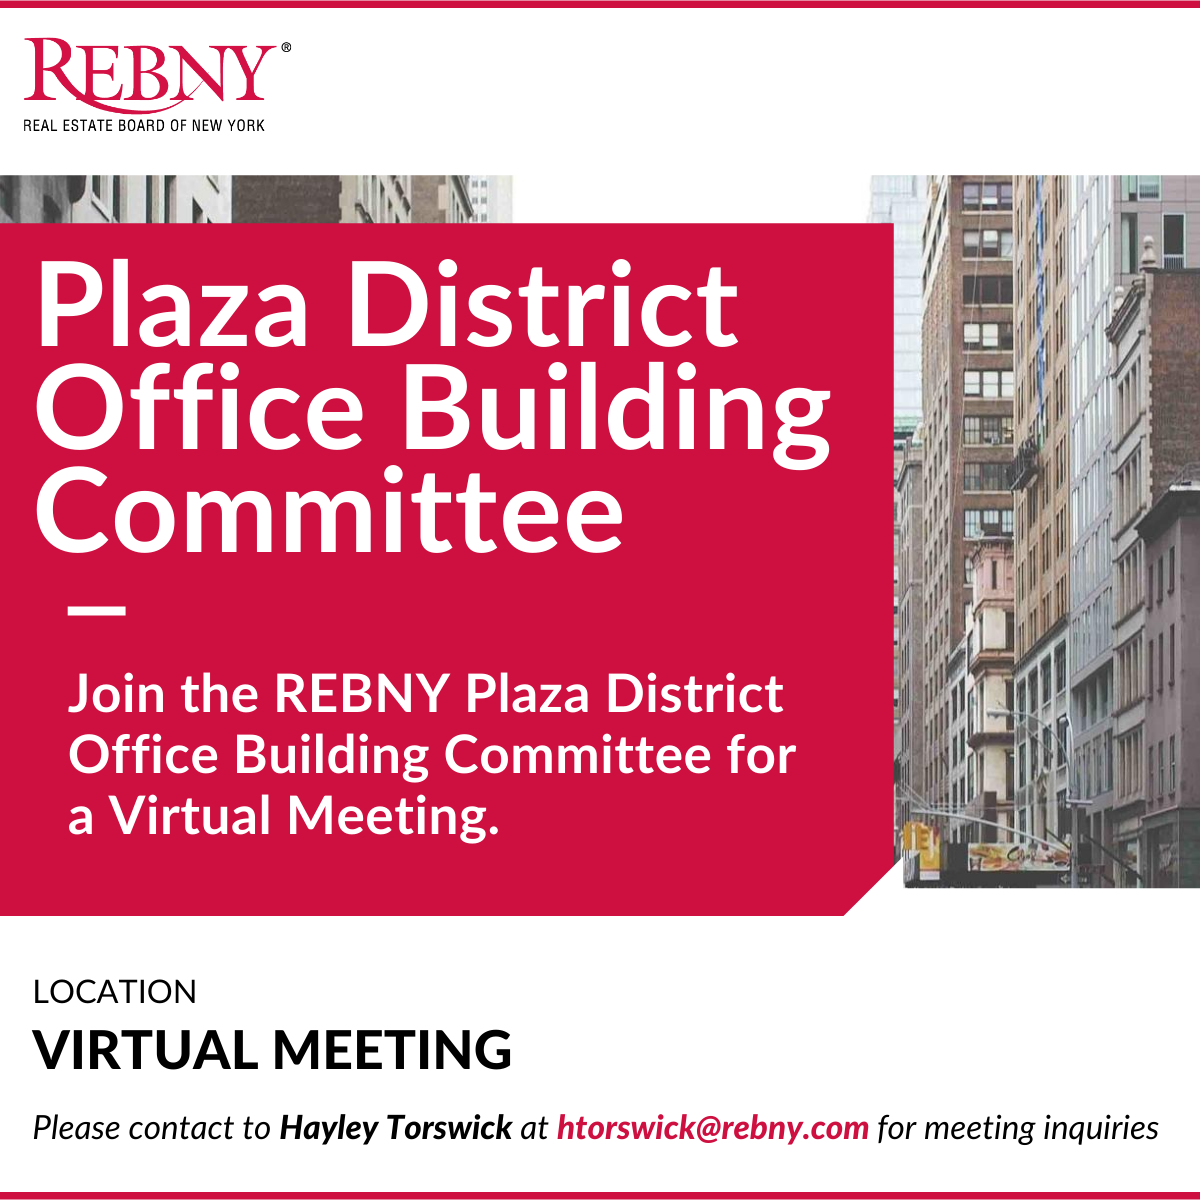 VIRTUAL: Commercial Brokerage Plaza District Office Building Committee Meeting